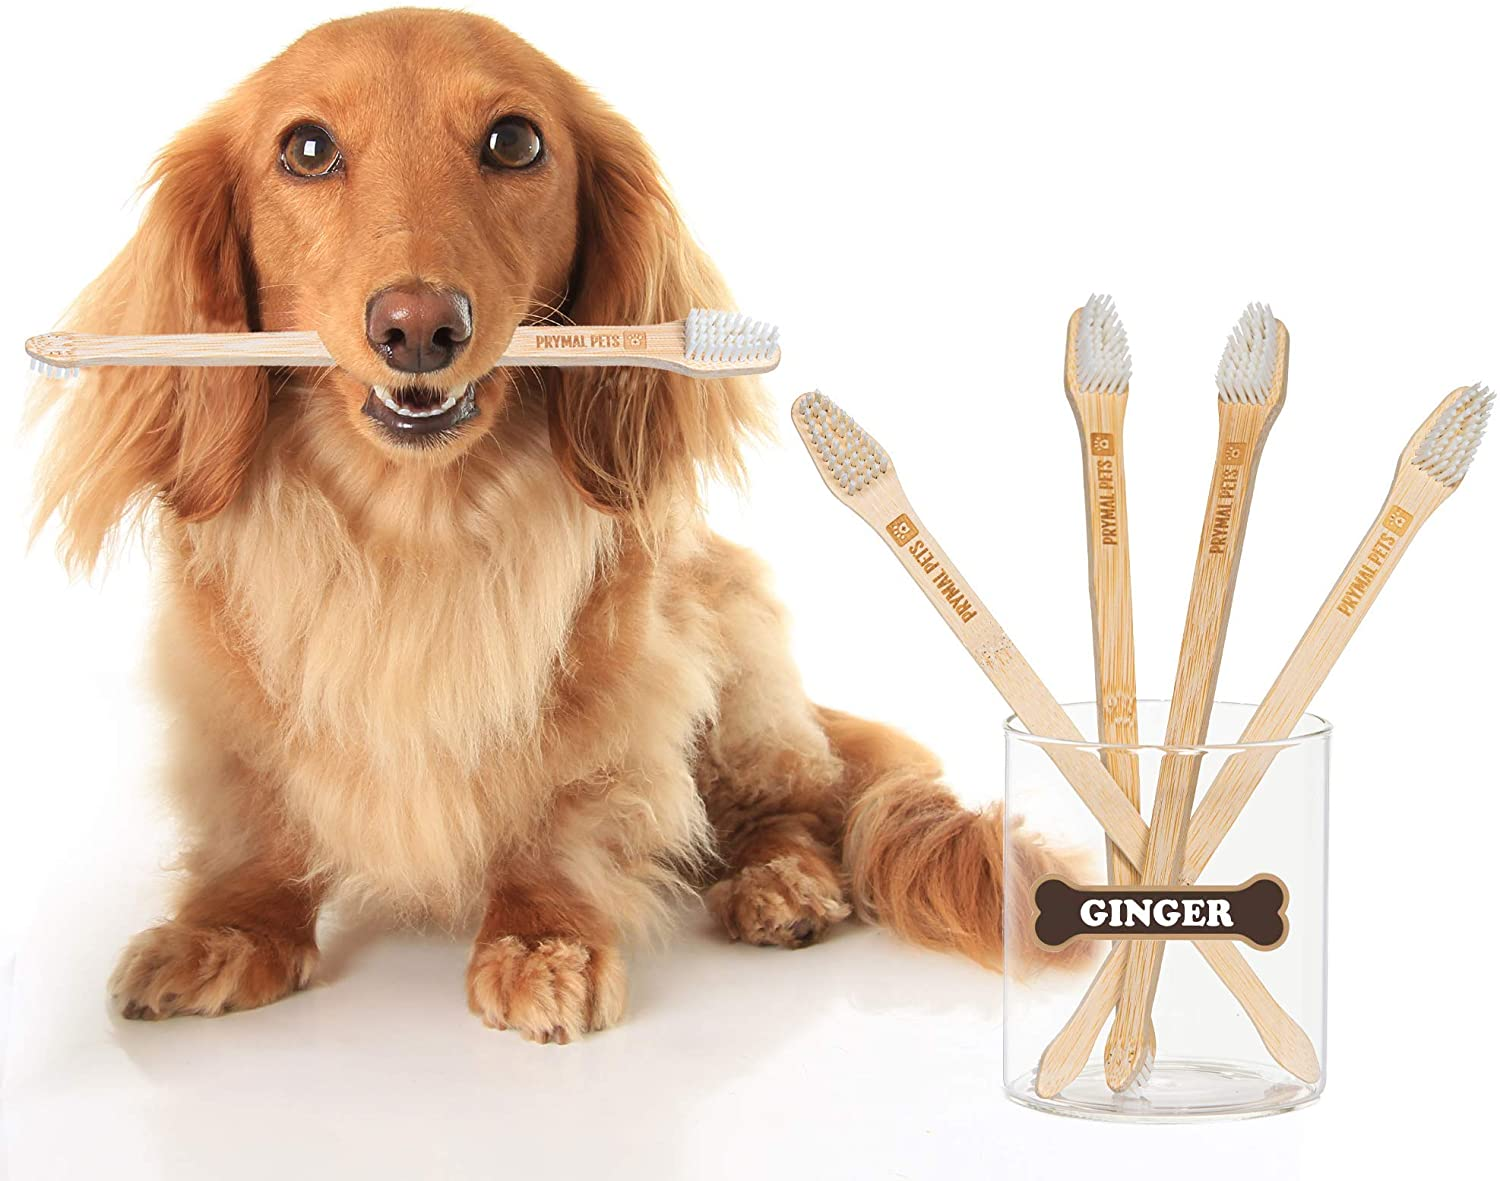 Yellow dog holding a bamboo toothbrush in mouth next to glass of additional toothbrushes